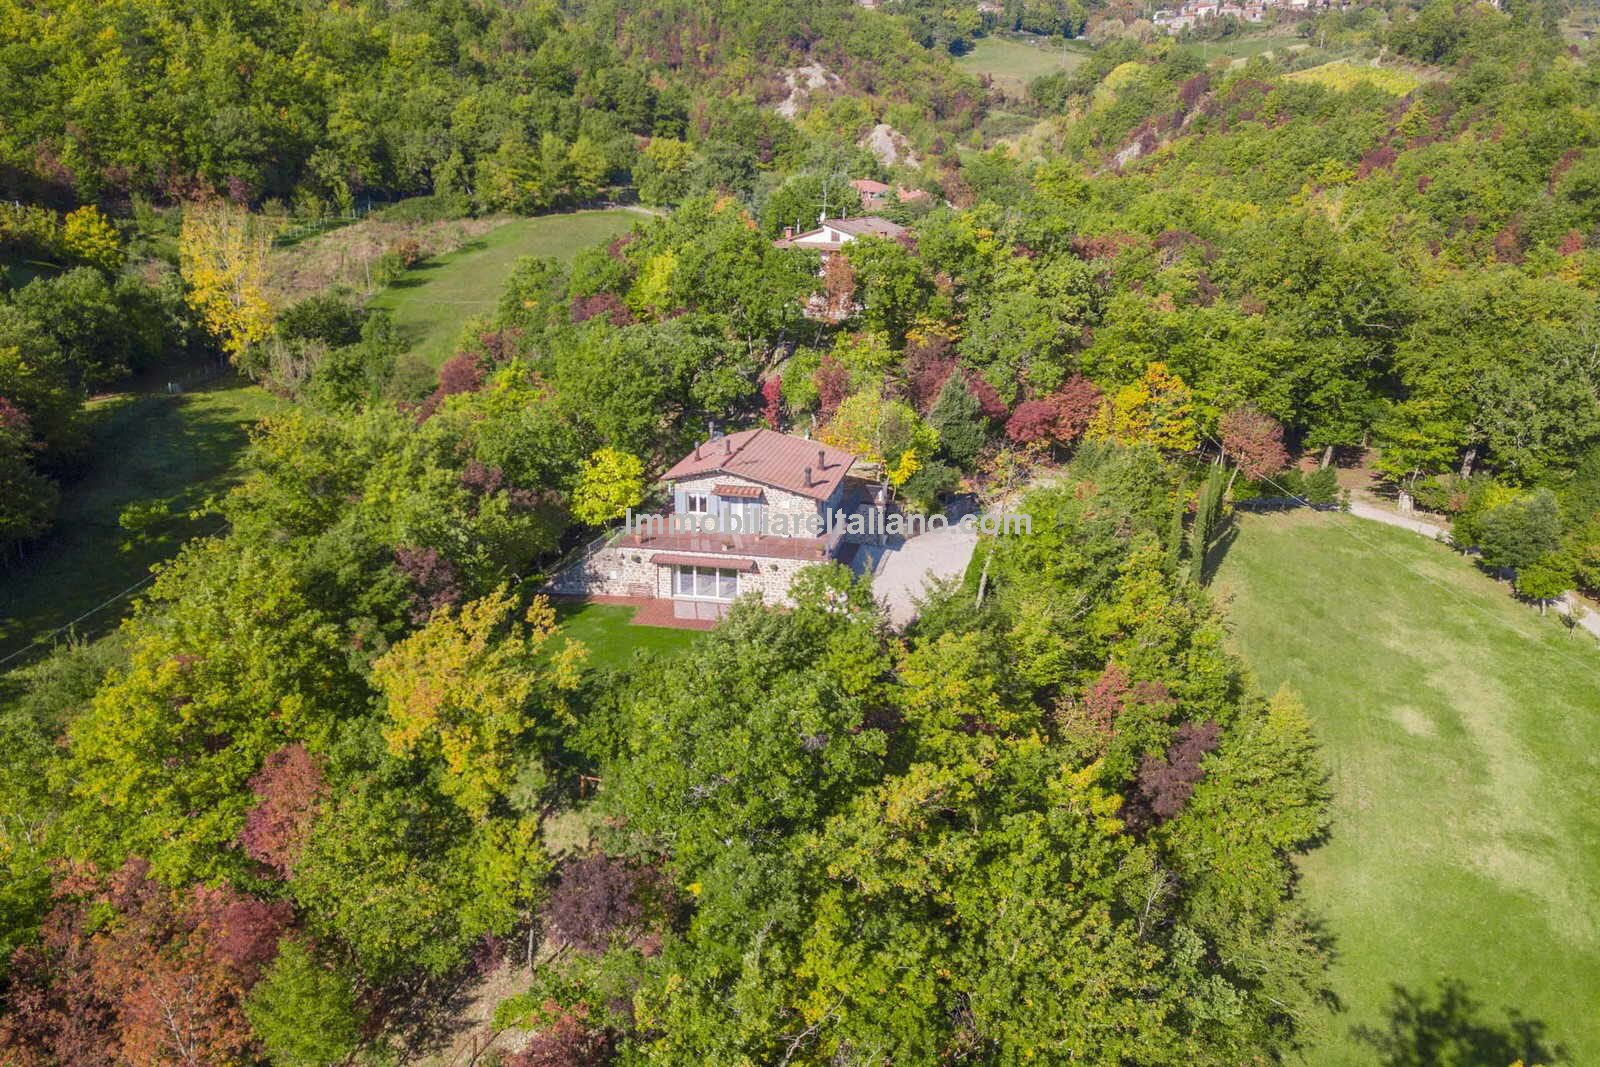 Aerial view of house in Tuscany for sale